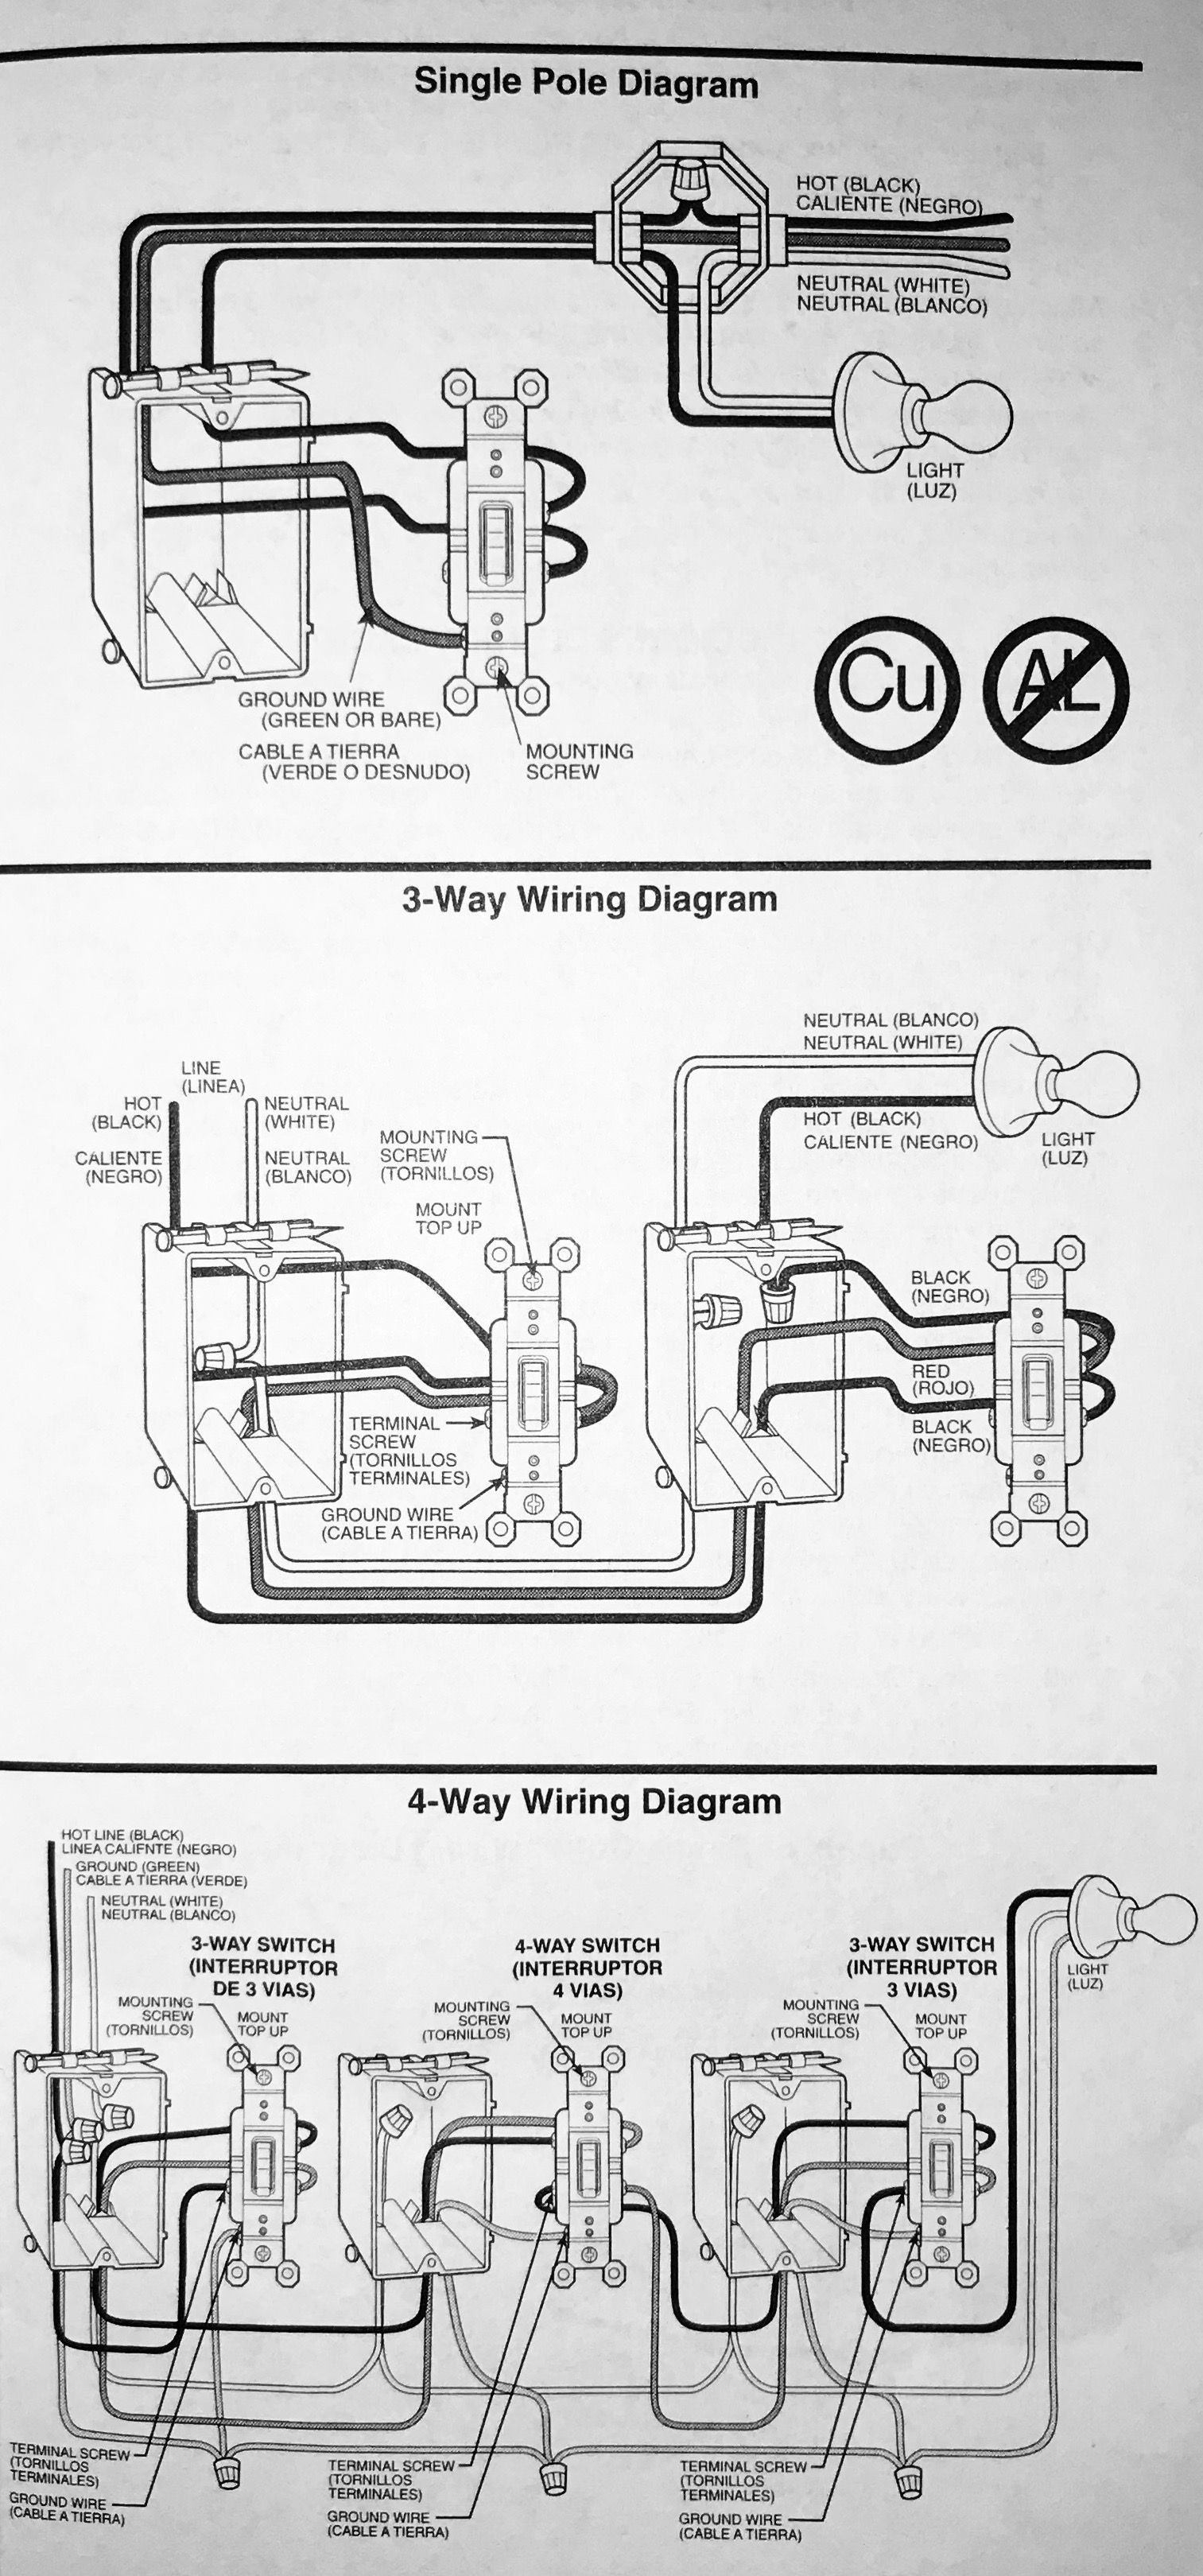 Unique Home Electrical Switch Wiring Diagram Wiringdiagram Diagramming Diagramm Visuals Electrical Wiring Electrical Switch Wiring Home Electrical Wiring